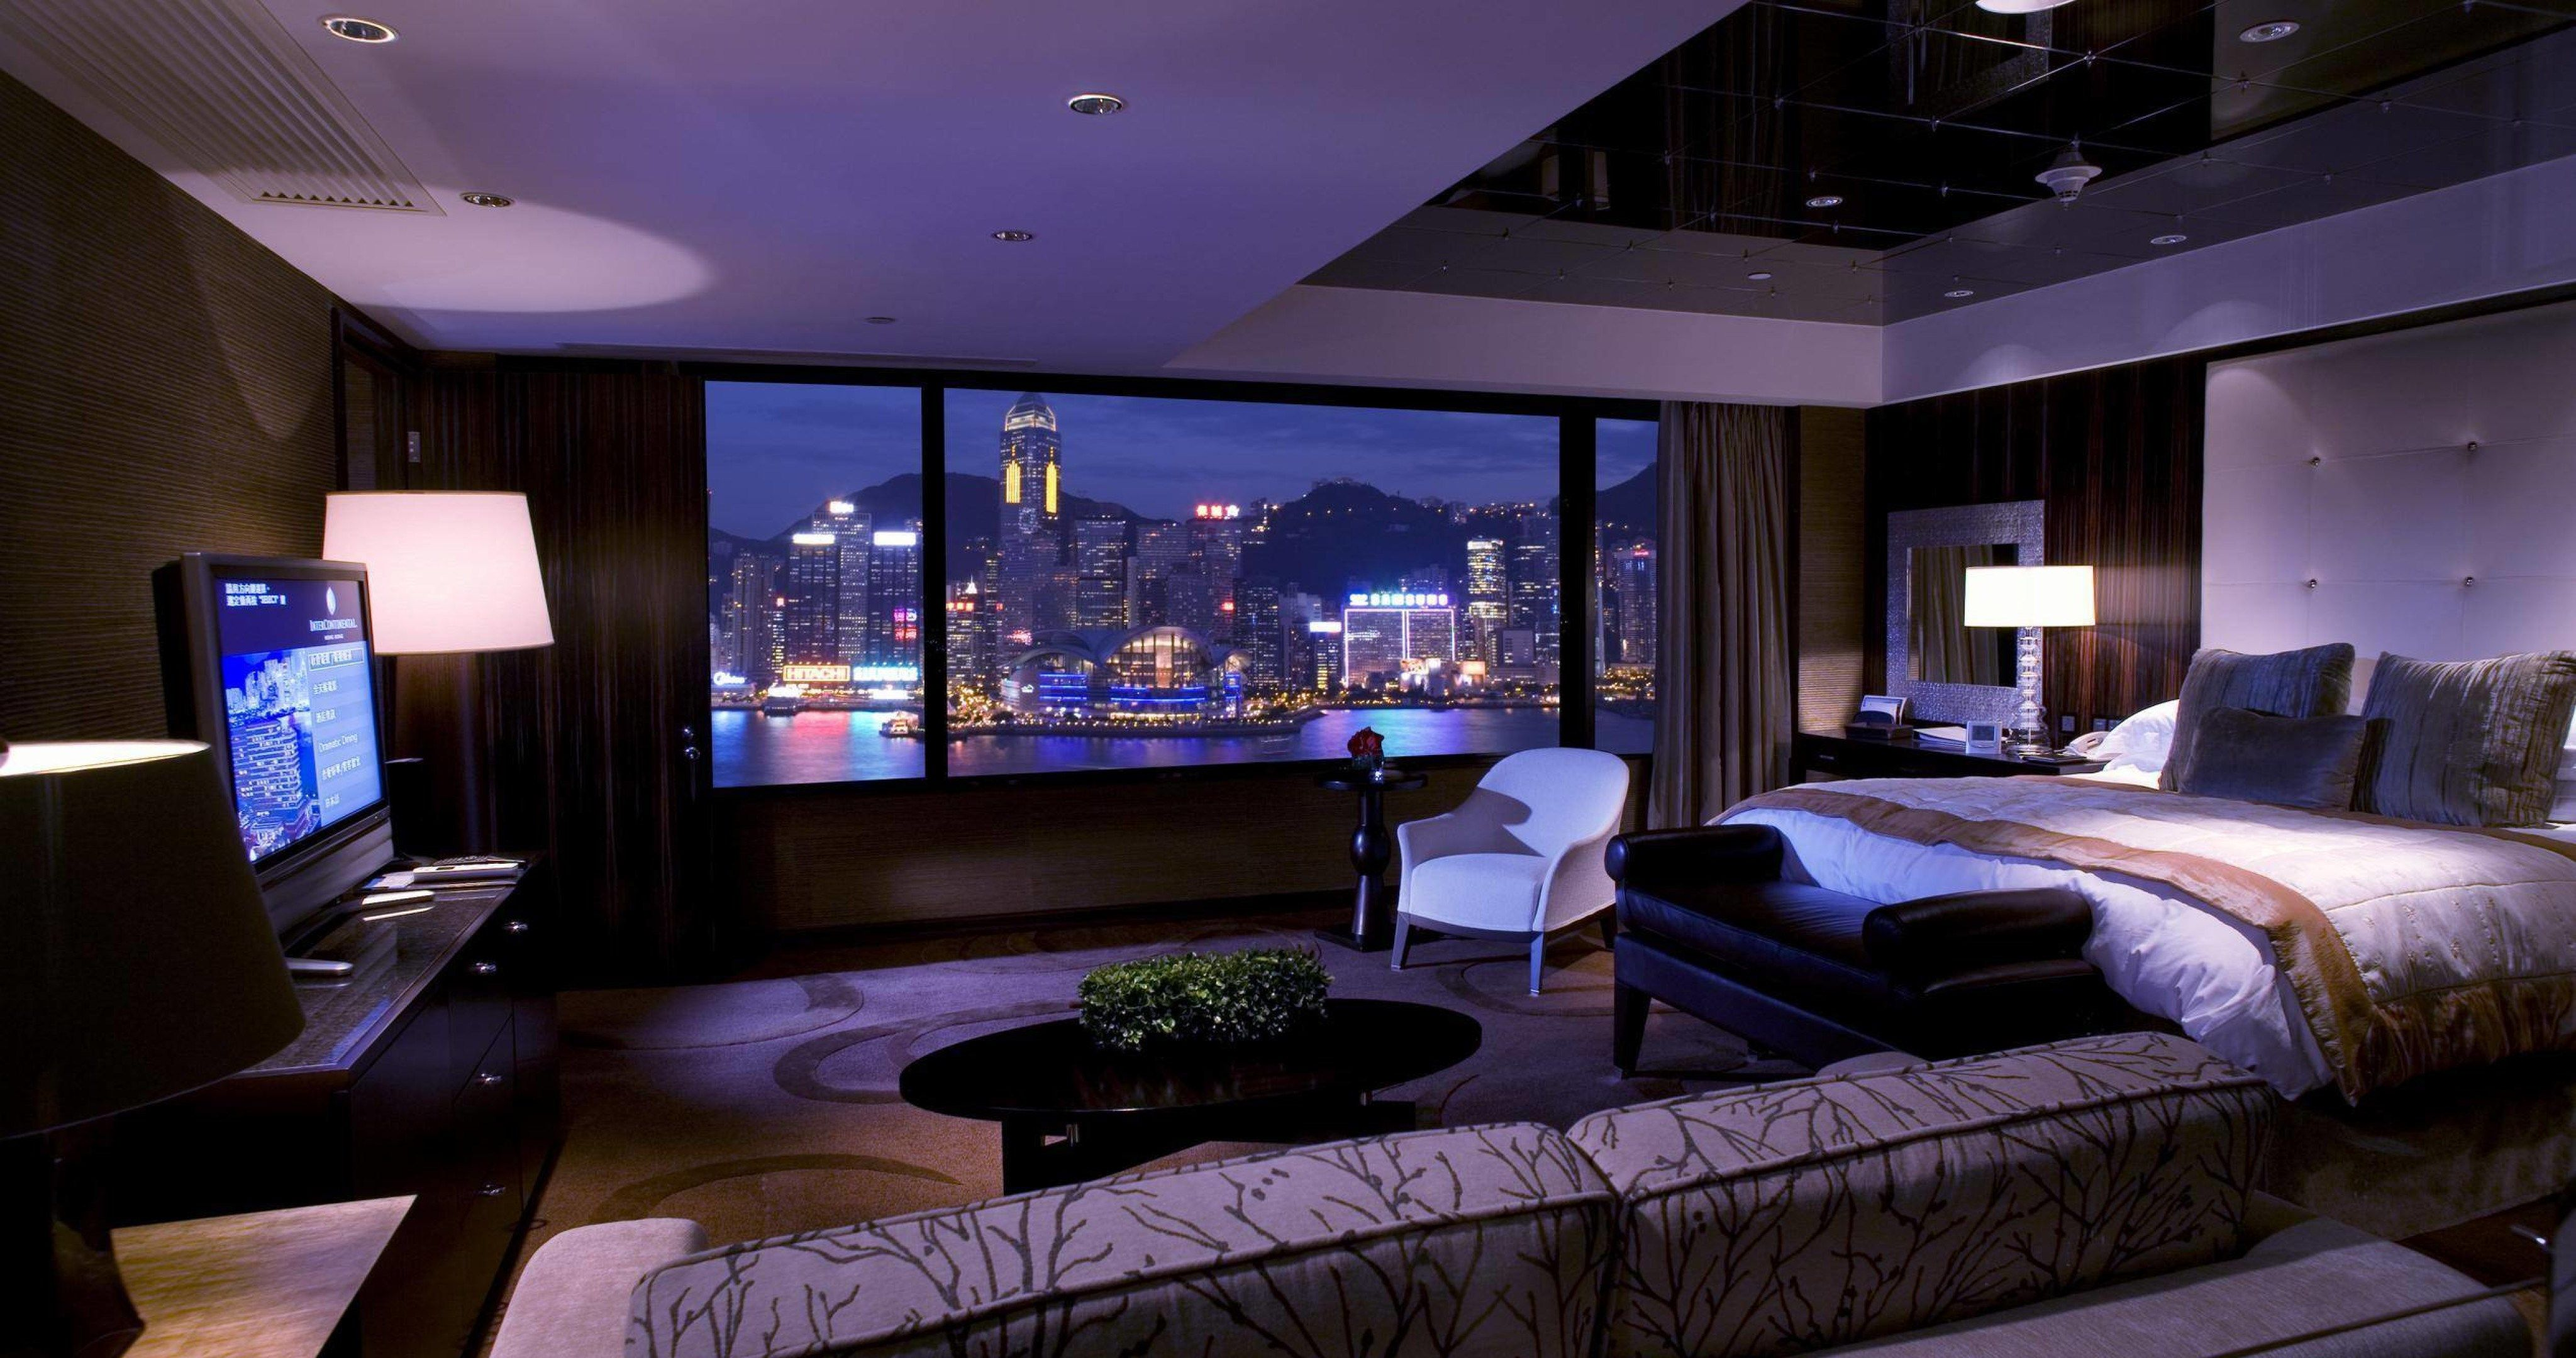 Interior Bedrom 4k Ultra Hd Wallpaper Luxurious Bedrooms Luxury Rooms Dream Rooms,Home Decorating Paint